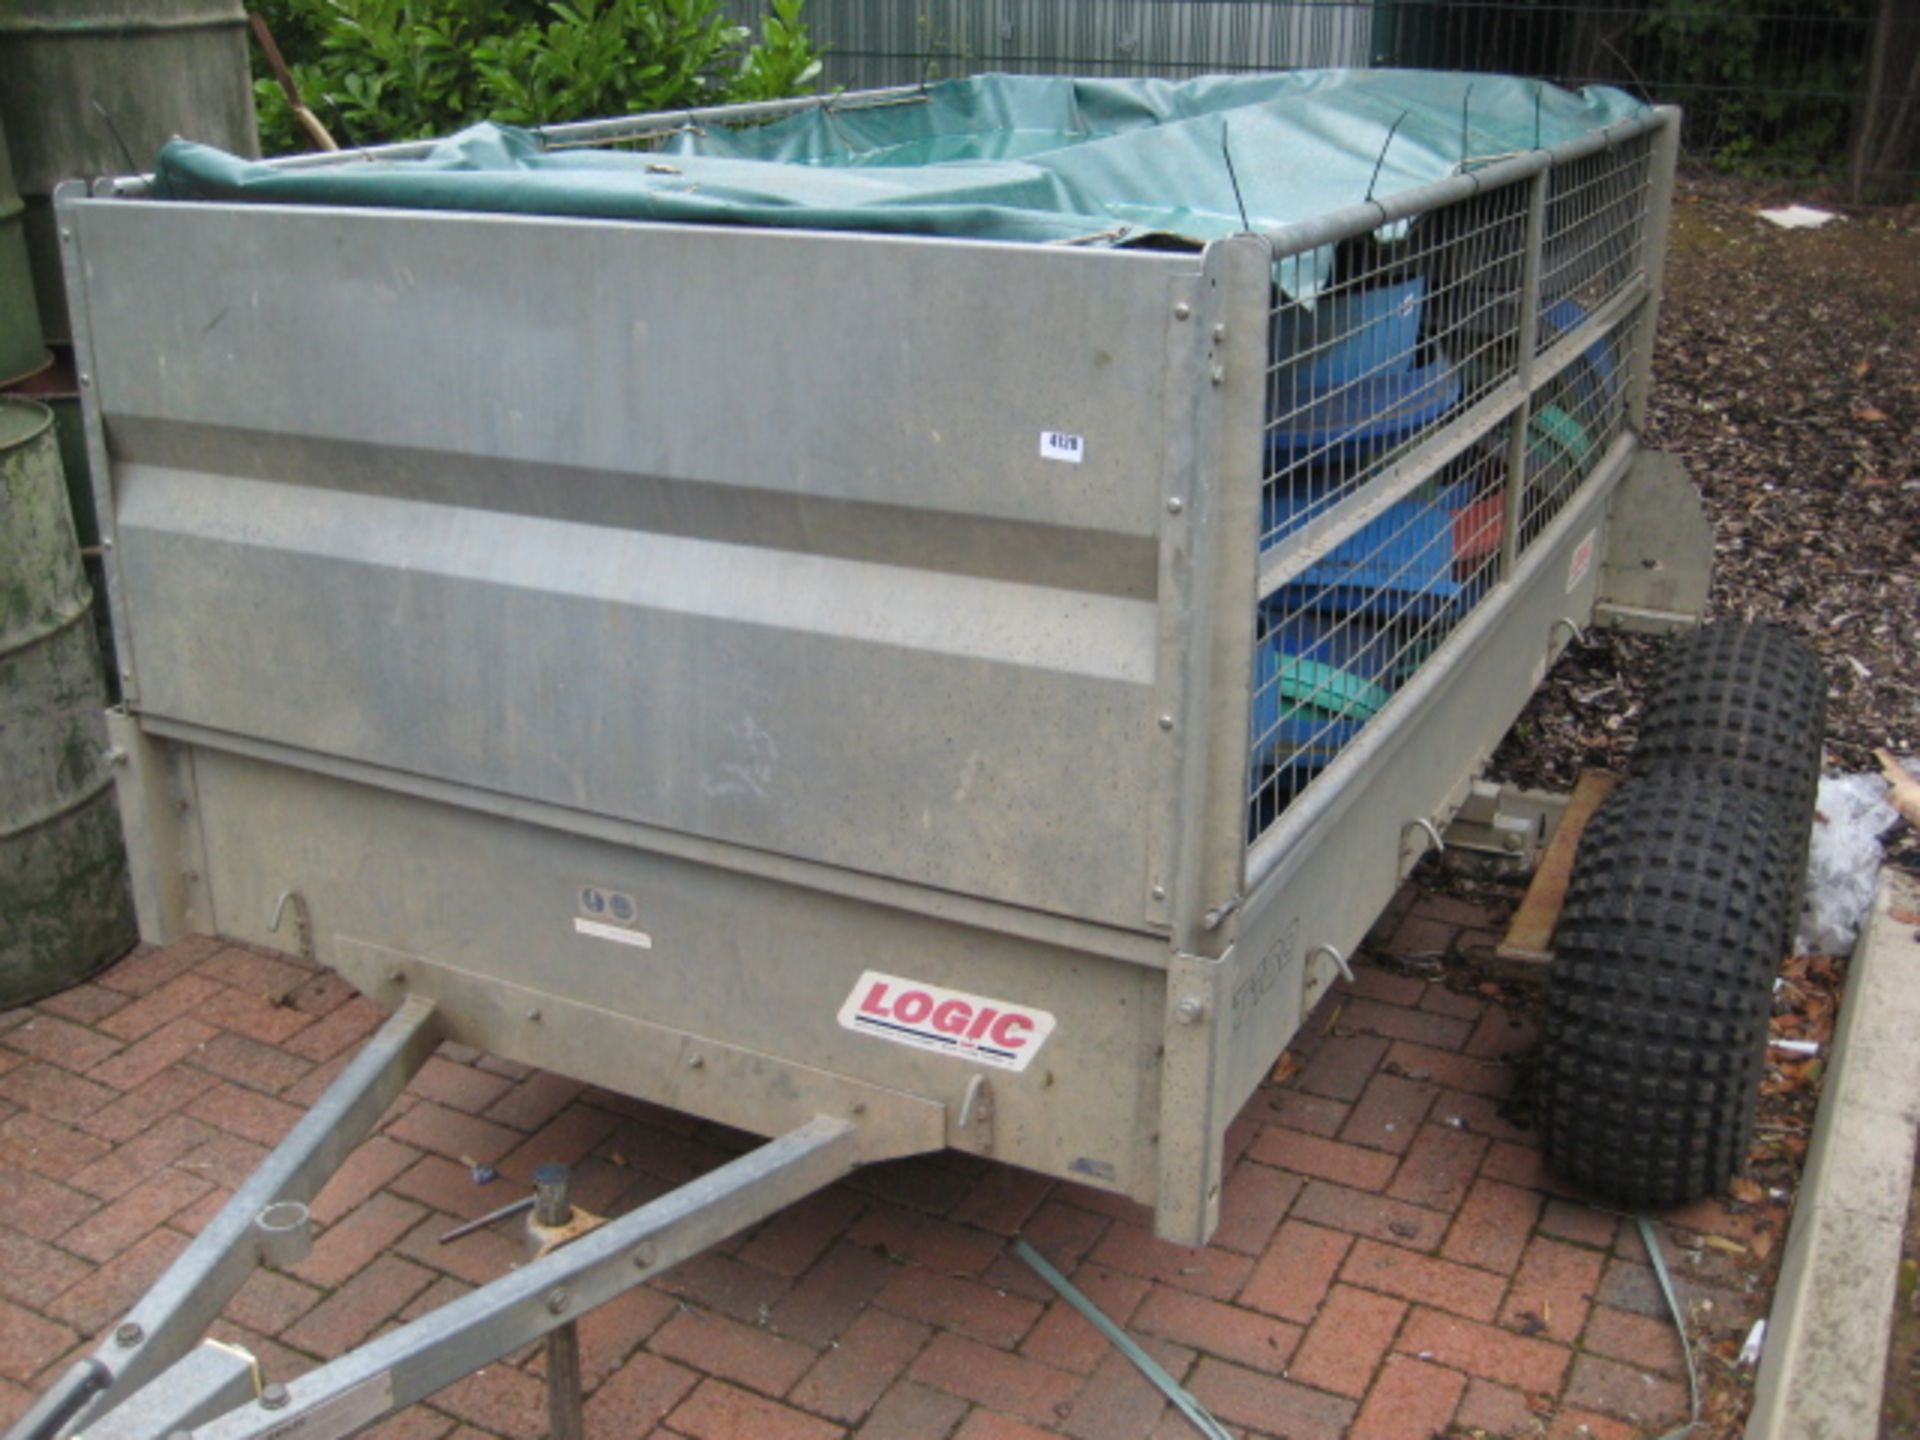 Lot 4128 - Logic XT100 galvanized single axle trailer with 4 wheel articulated axle conversion, low ground